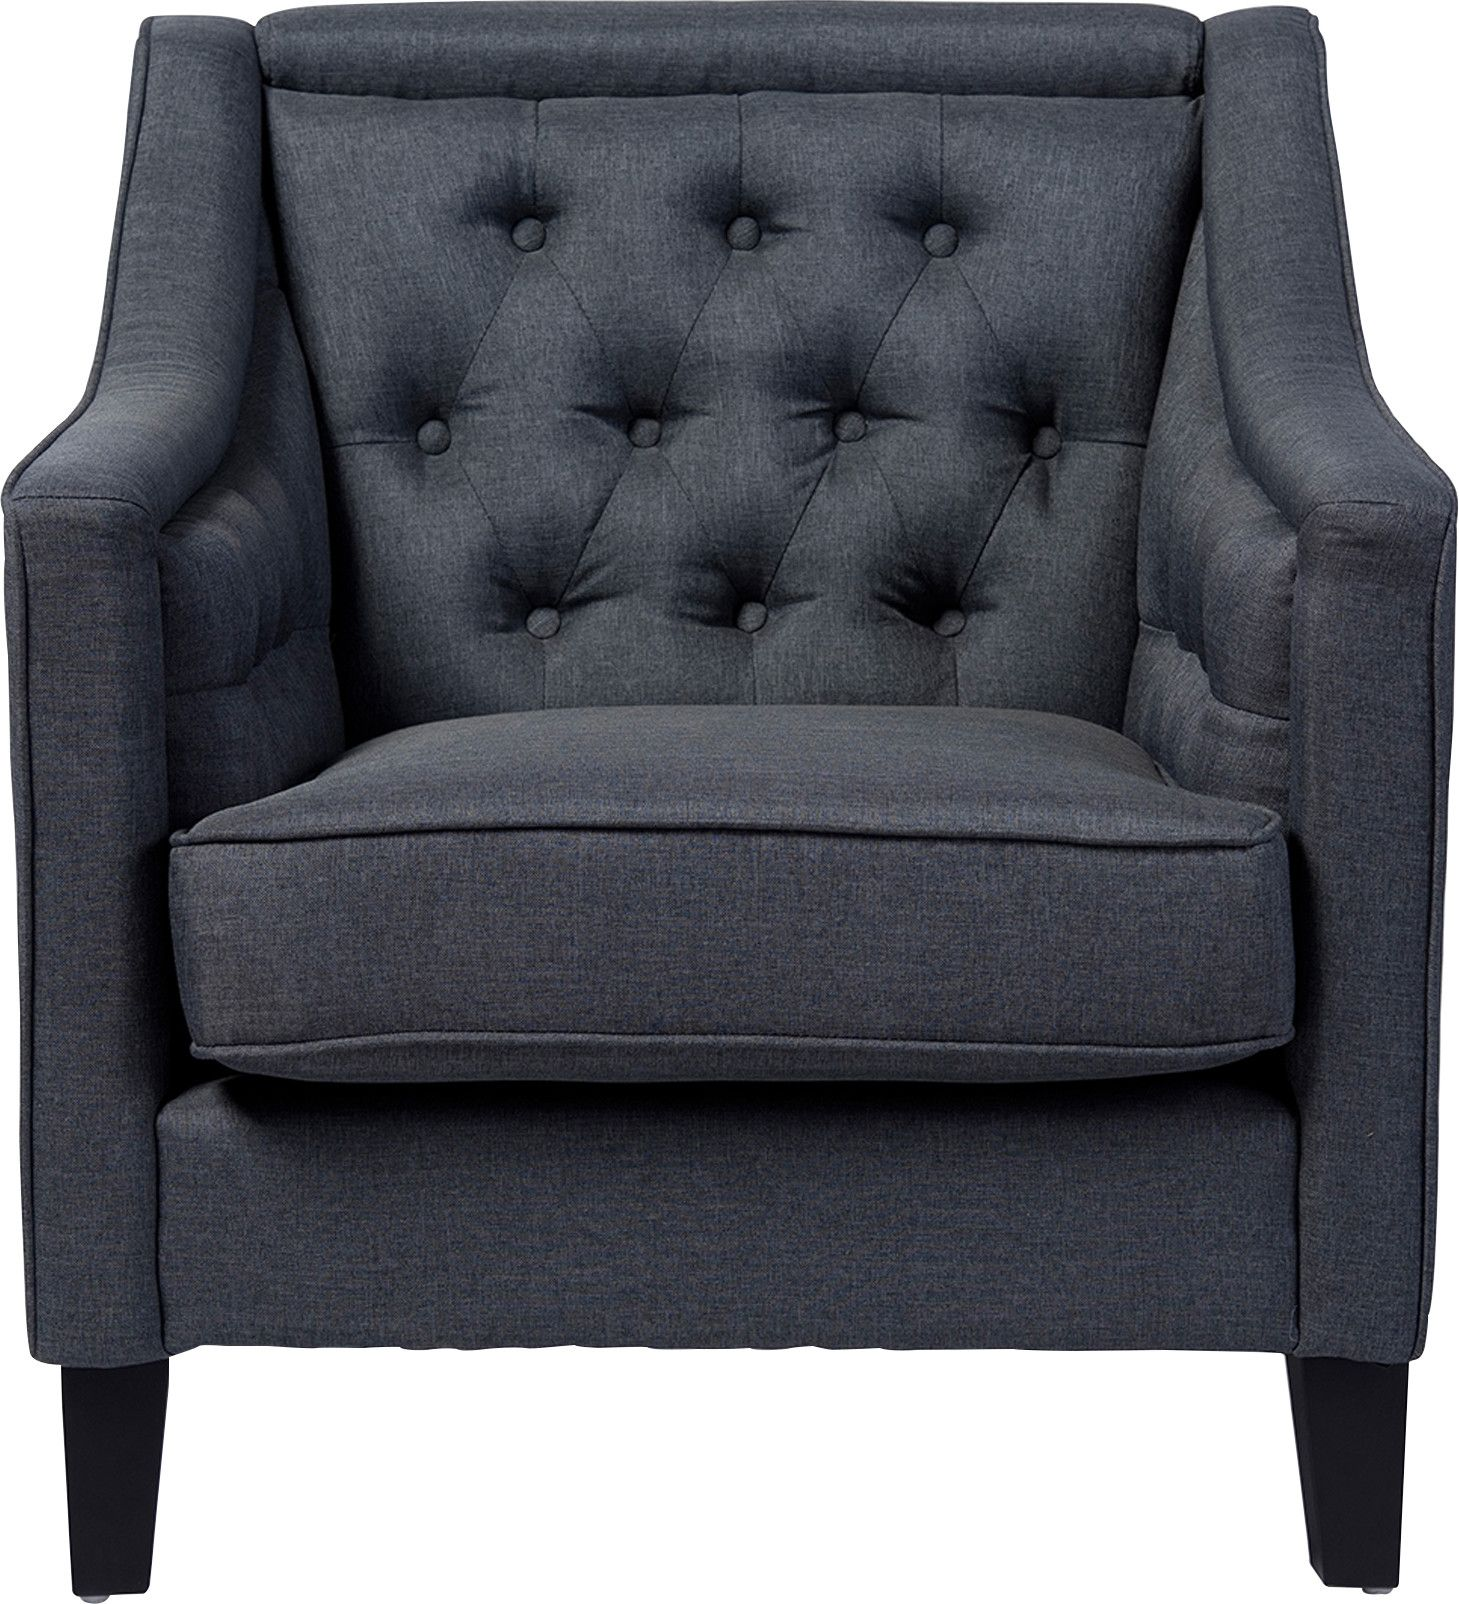 Alberty Classic Retro Upholstered Arm Chair